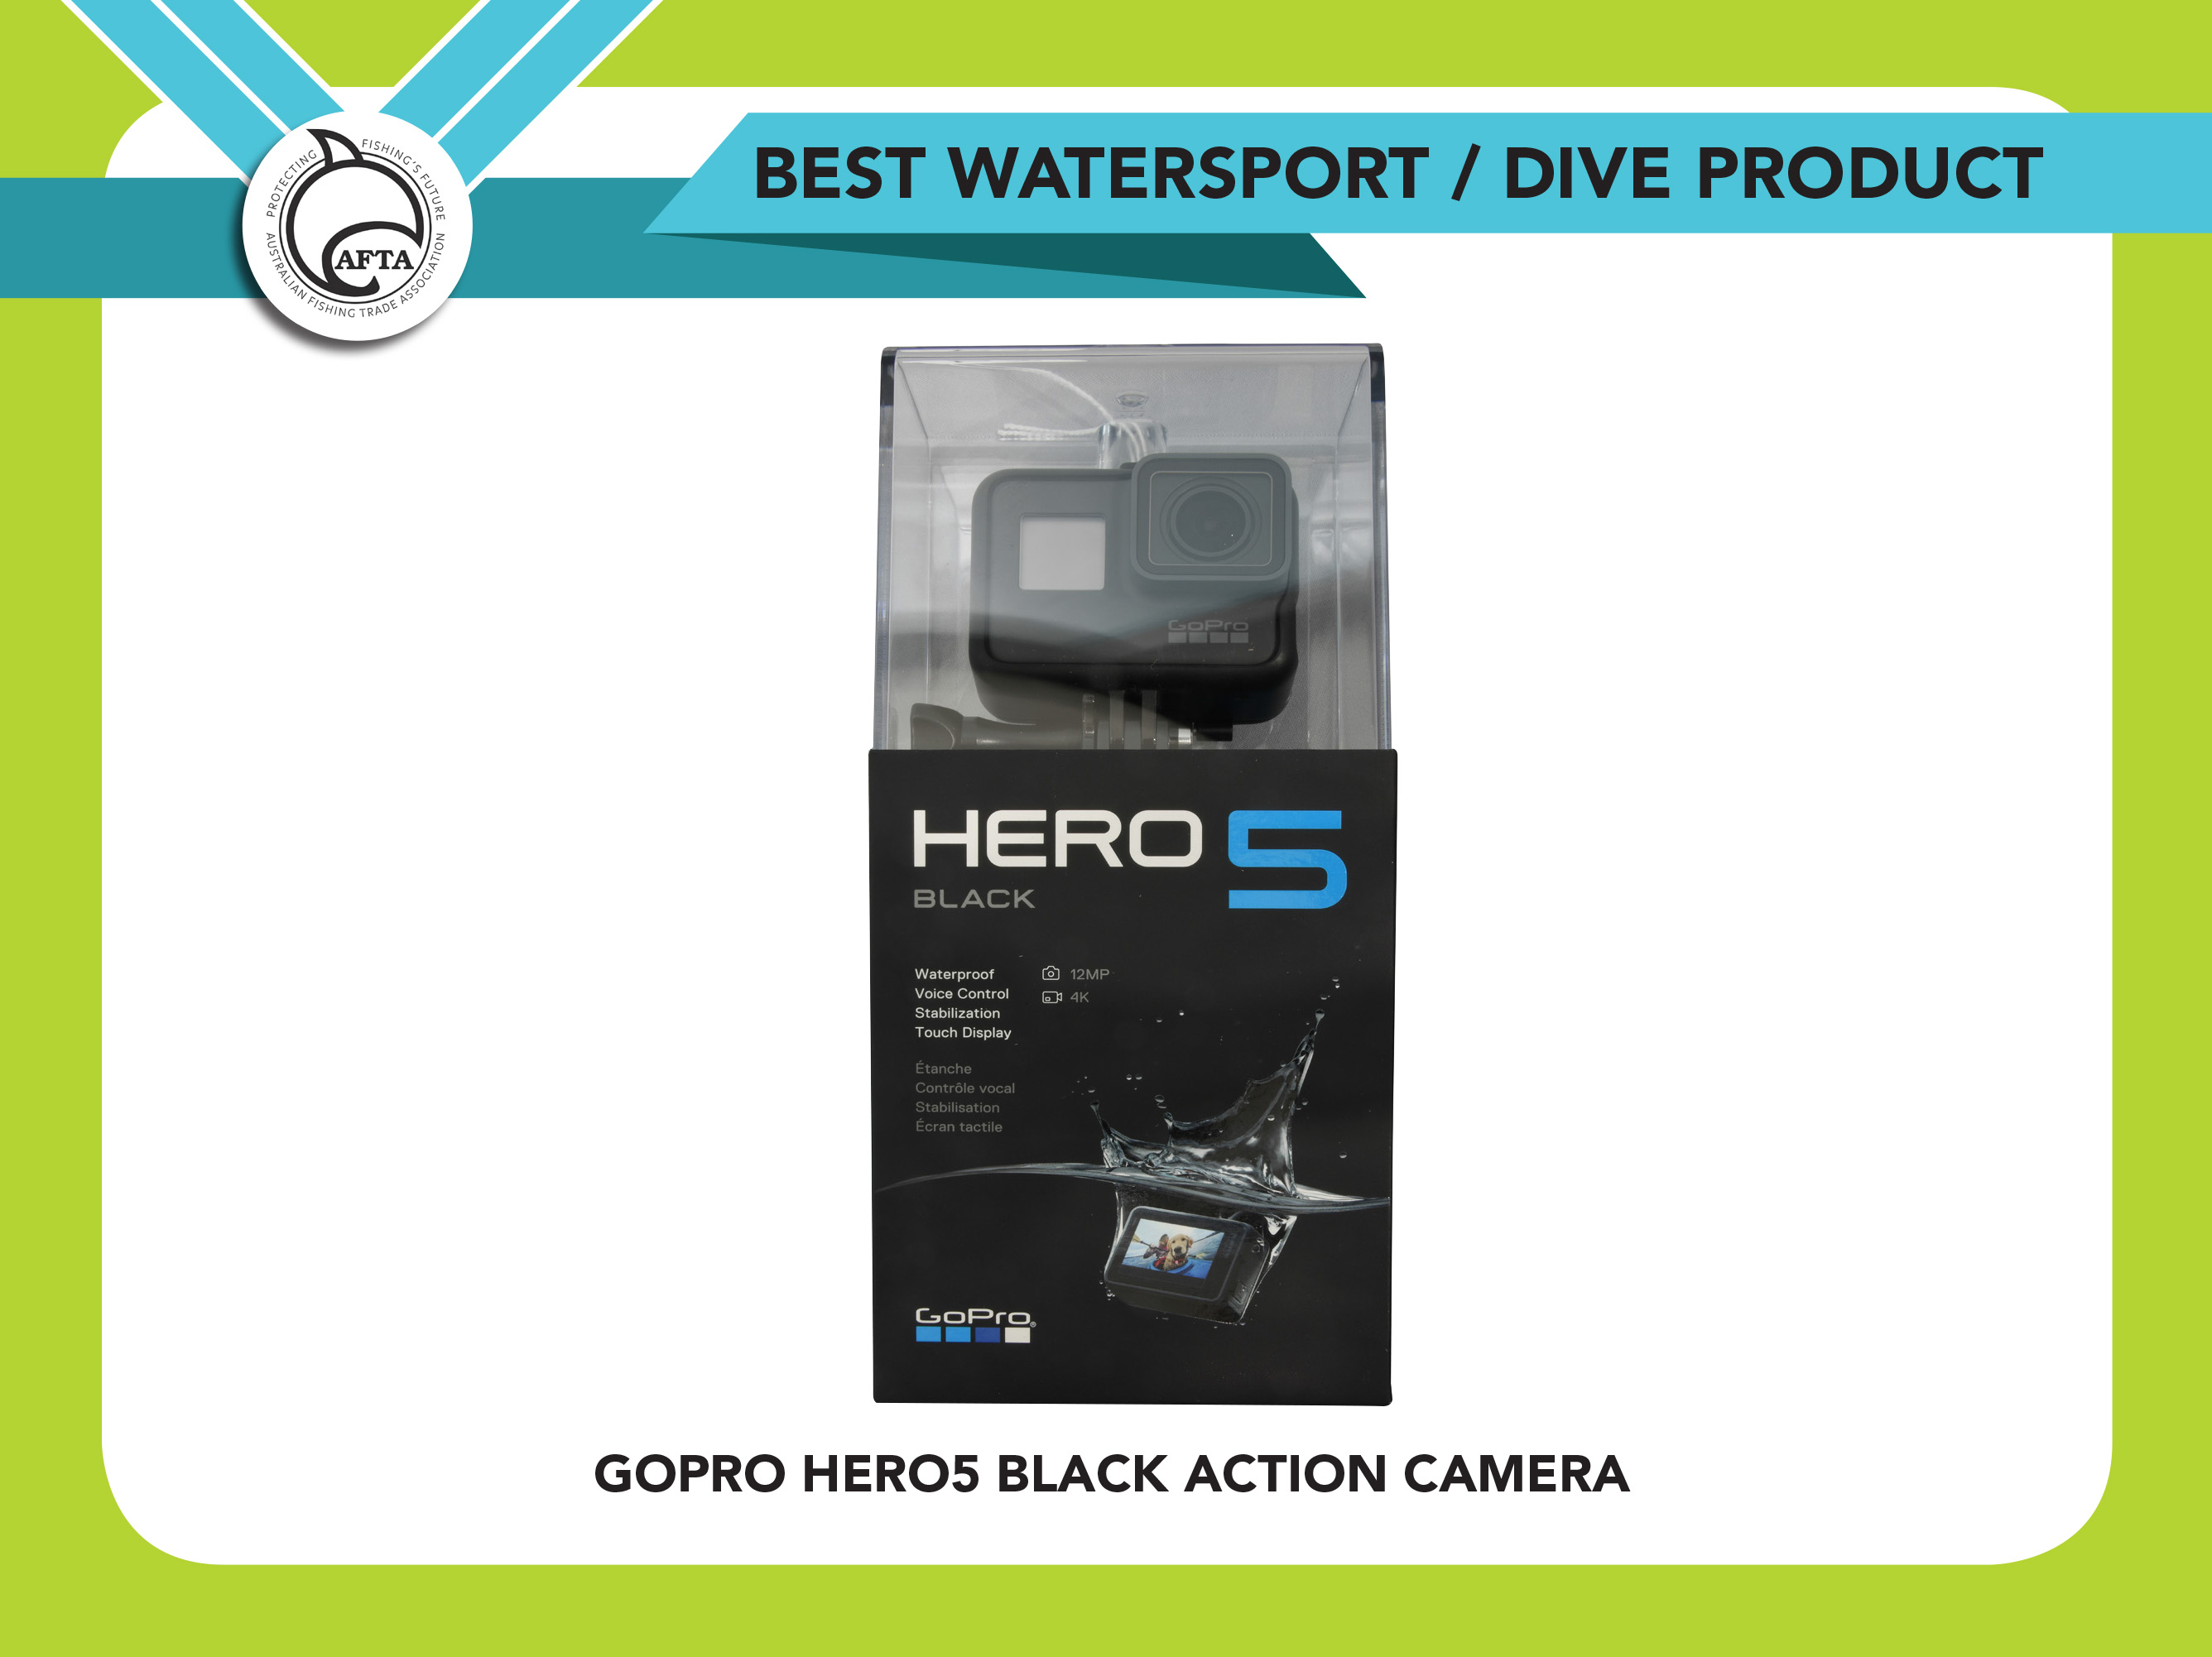 BestWatersportDiveProduct